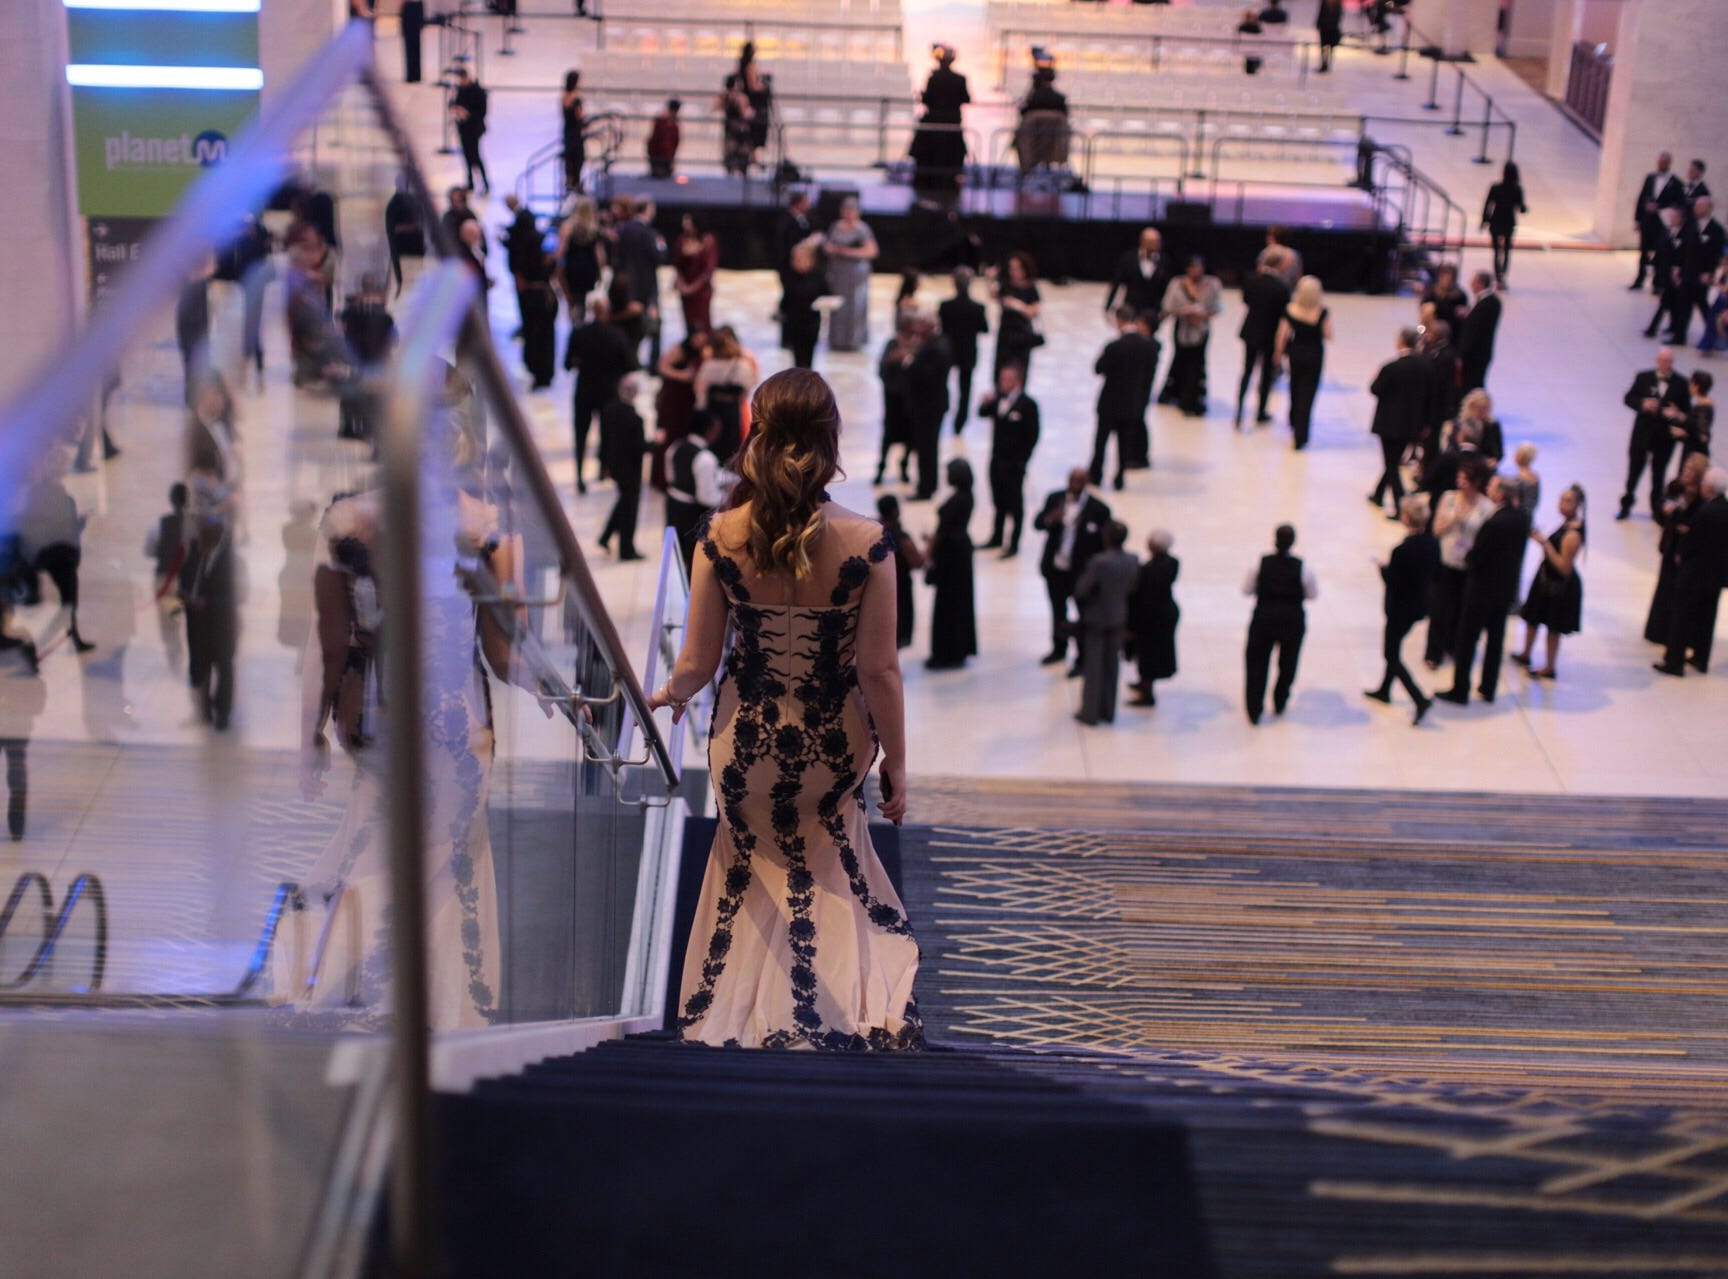 A woman walks Dow for the start of the 2019 North American International Auto Show Charity Preview at Cobo Center in Detroit on Friday, January 18, 2019.